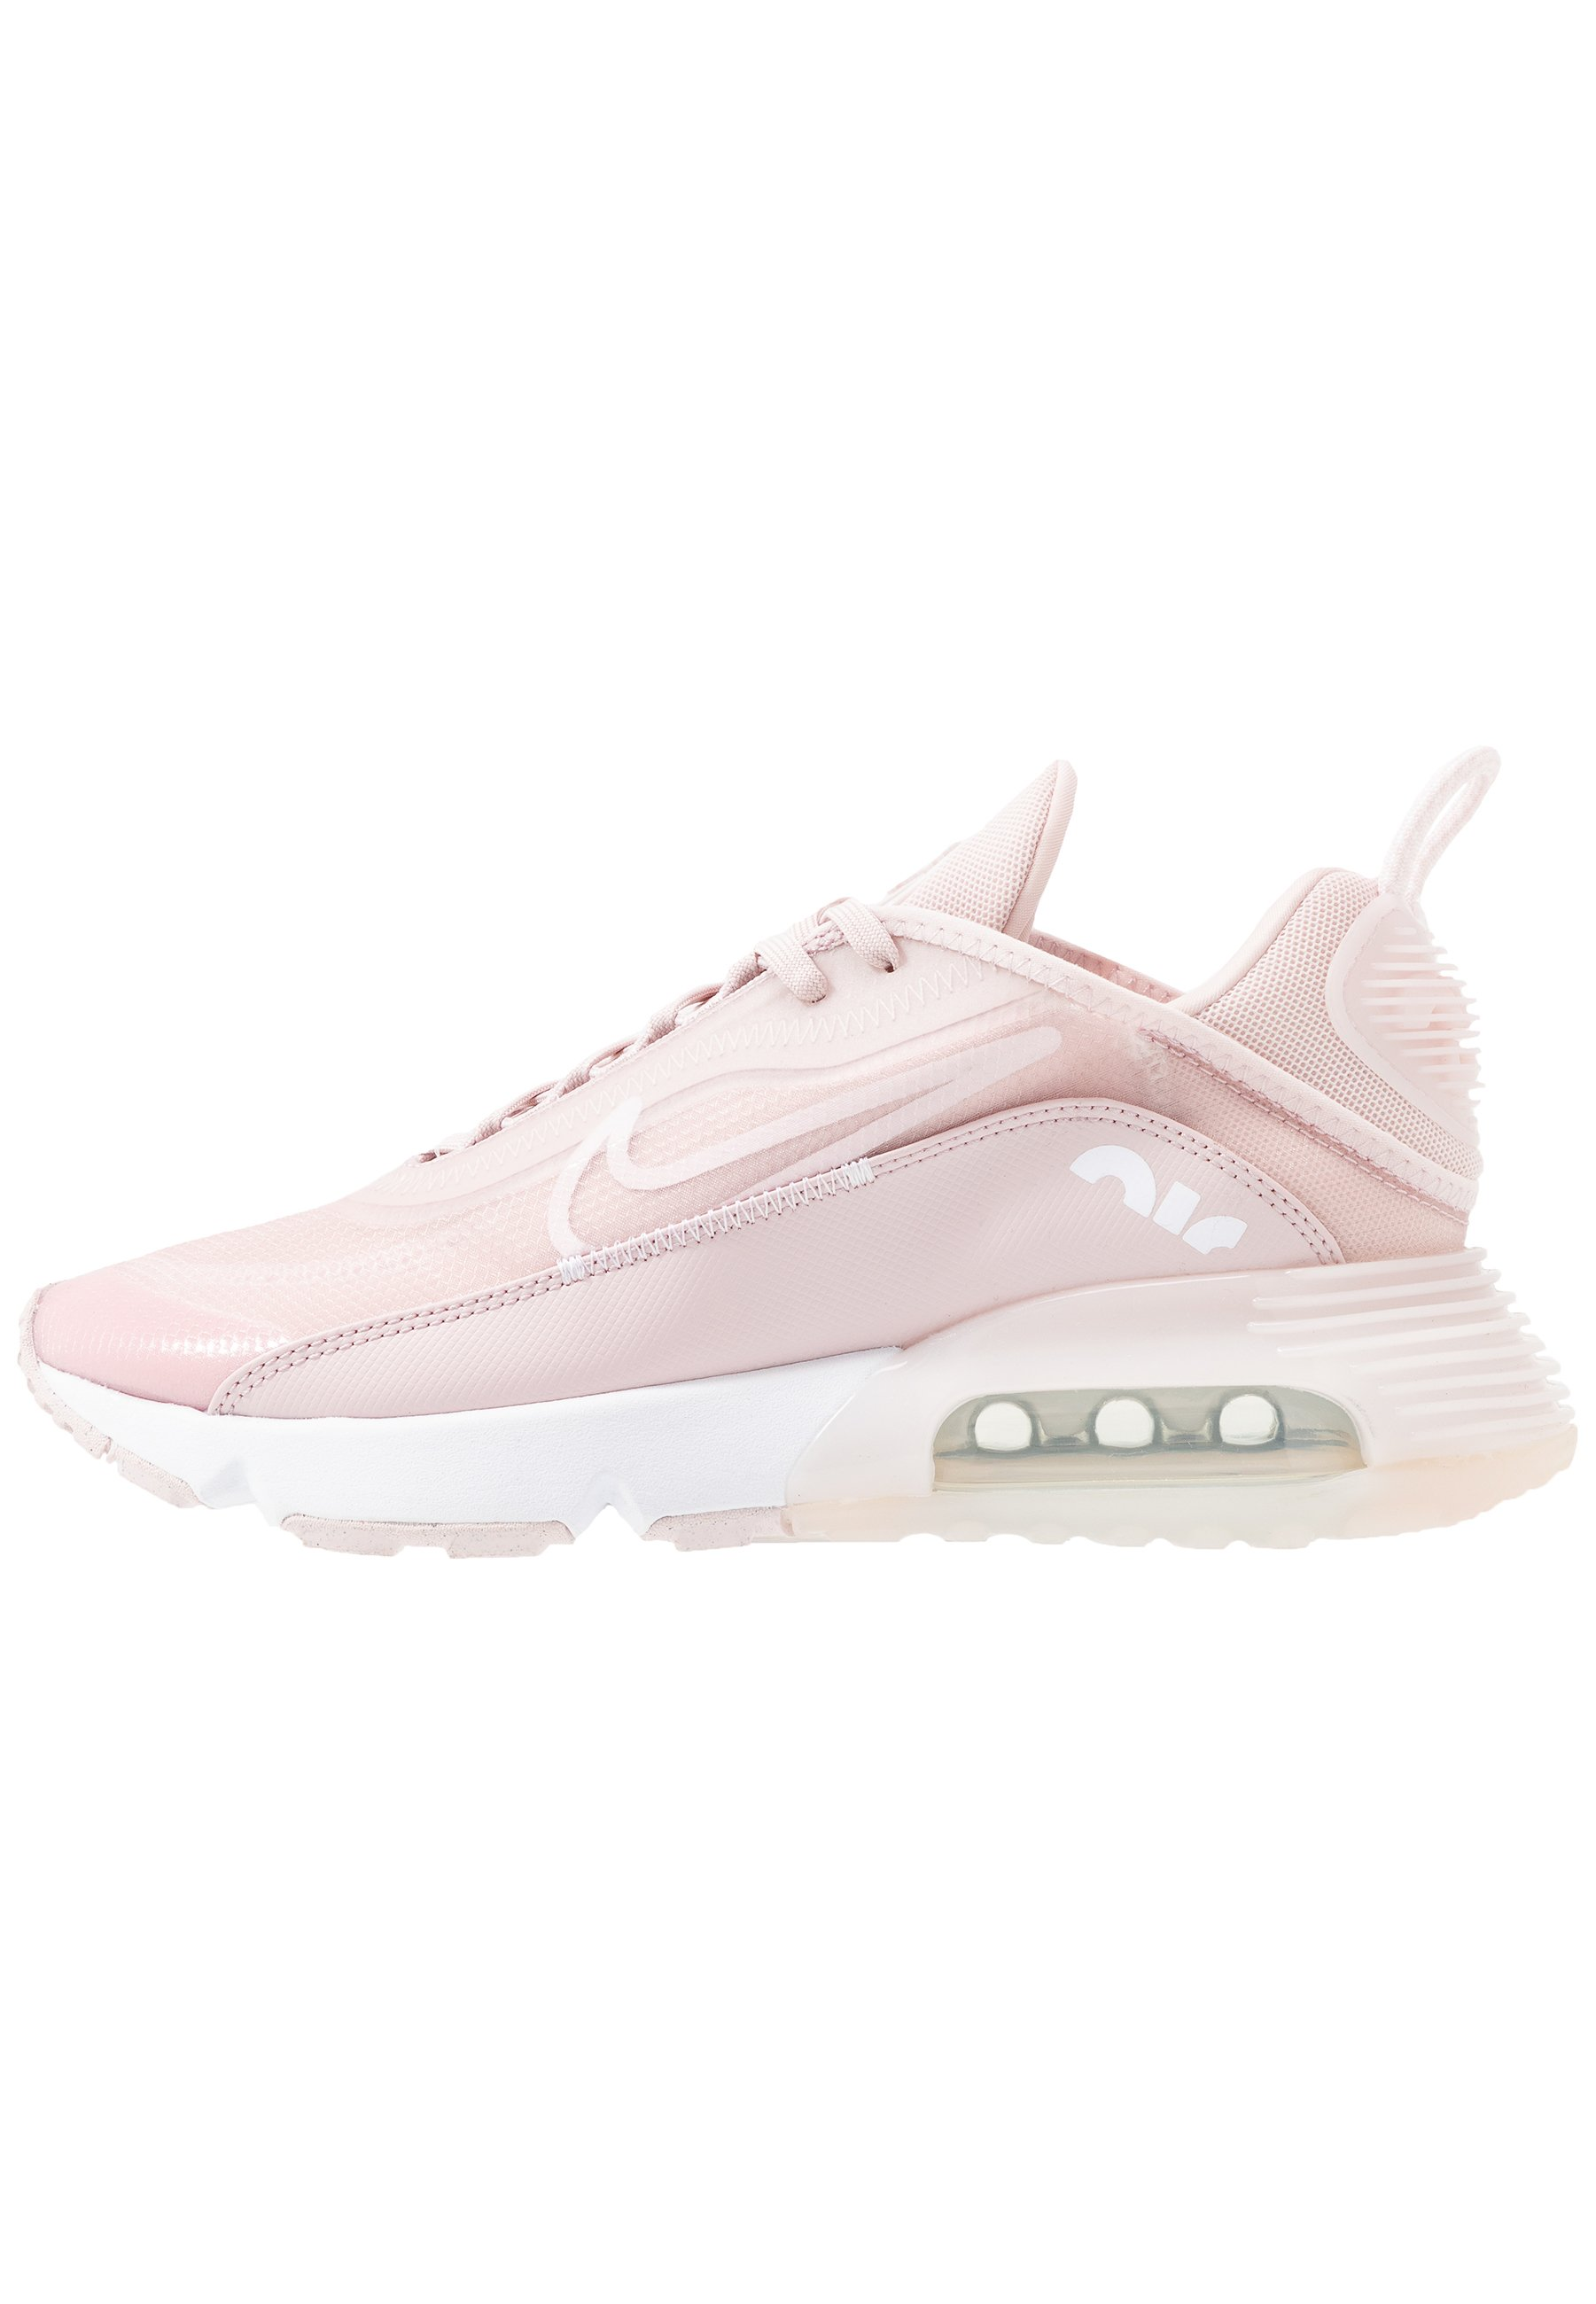 AIR MAX 2090 Sneakers barely rosewhitemetallic silver